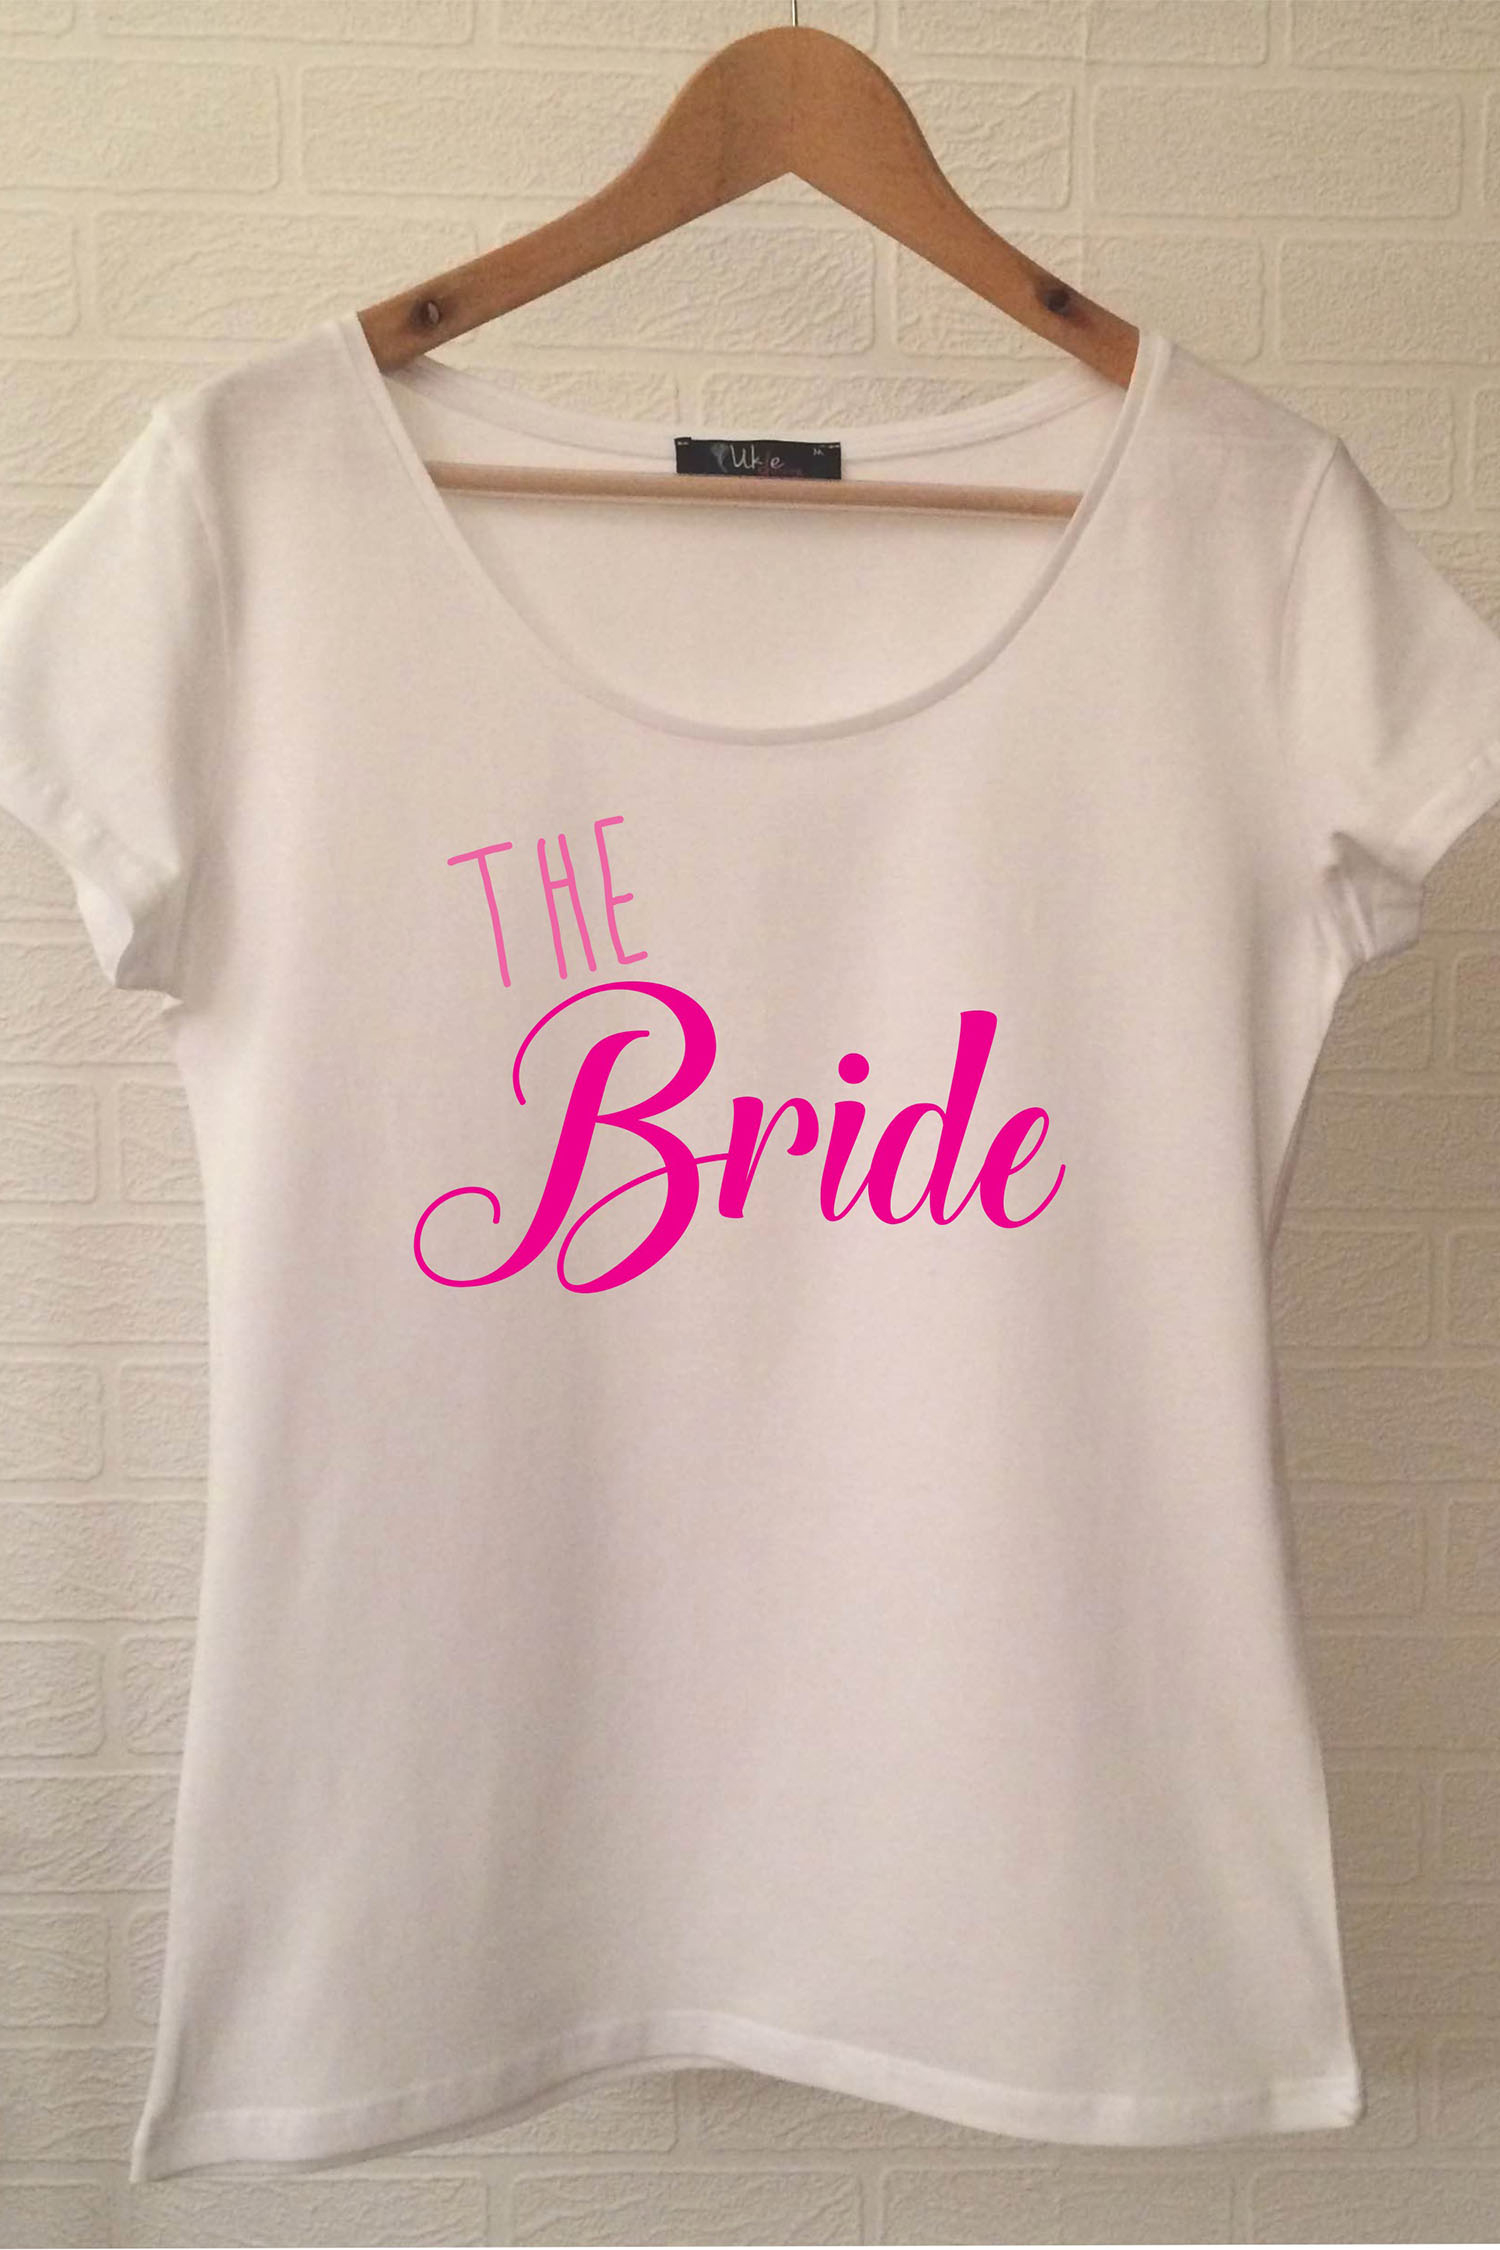 Bride T-shirt ukde113